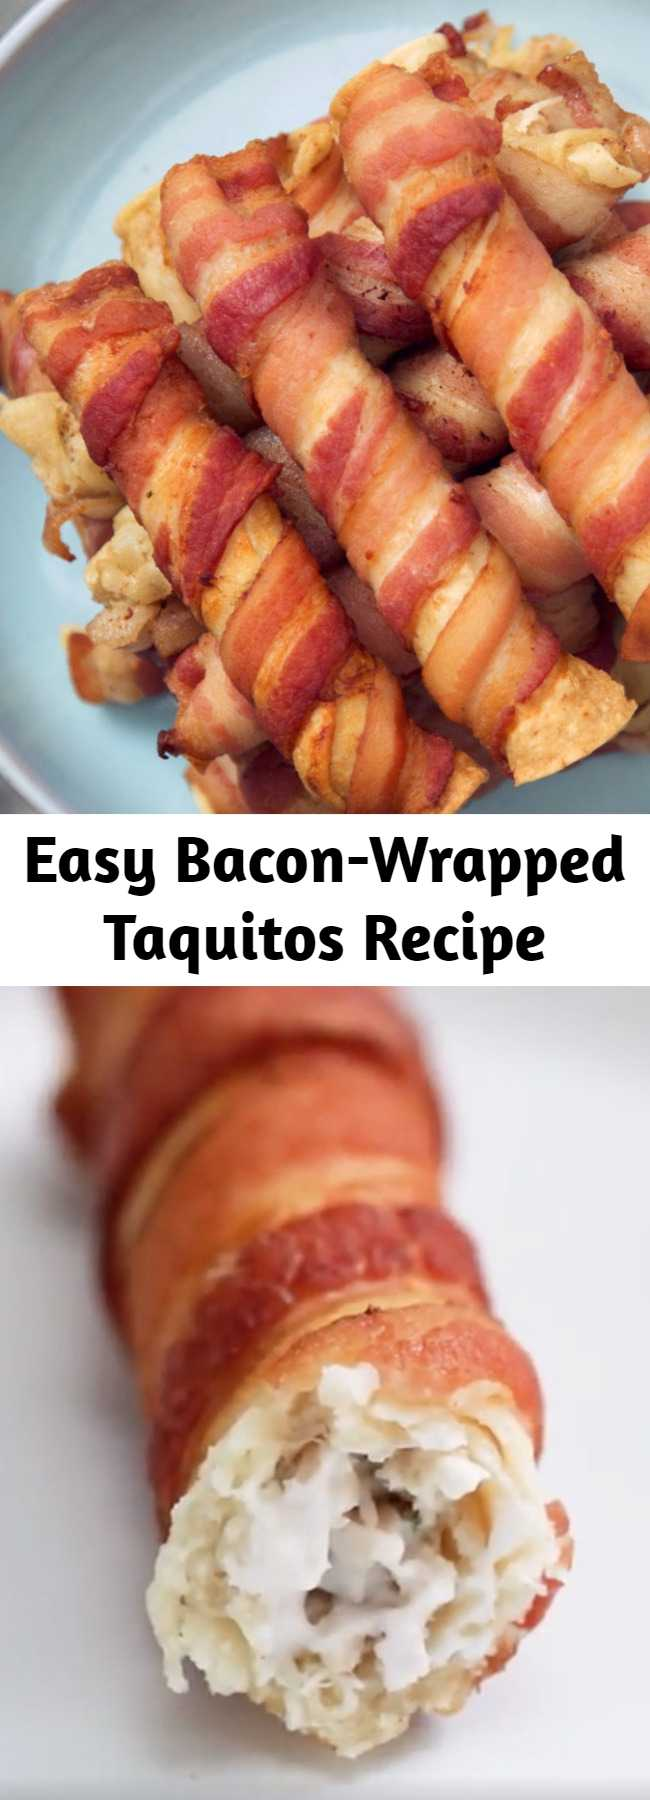 Bacon-Wrapped Taquitos Recipe - Ordinary chicken taquitos are fine, but an extra wrapping of bacon is like trying them again, for the first time.